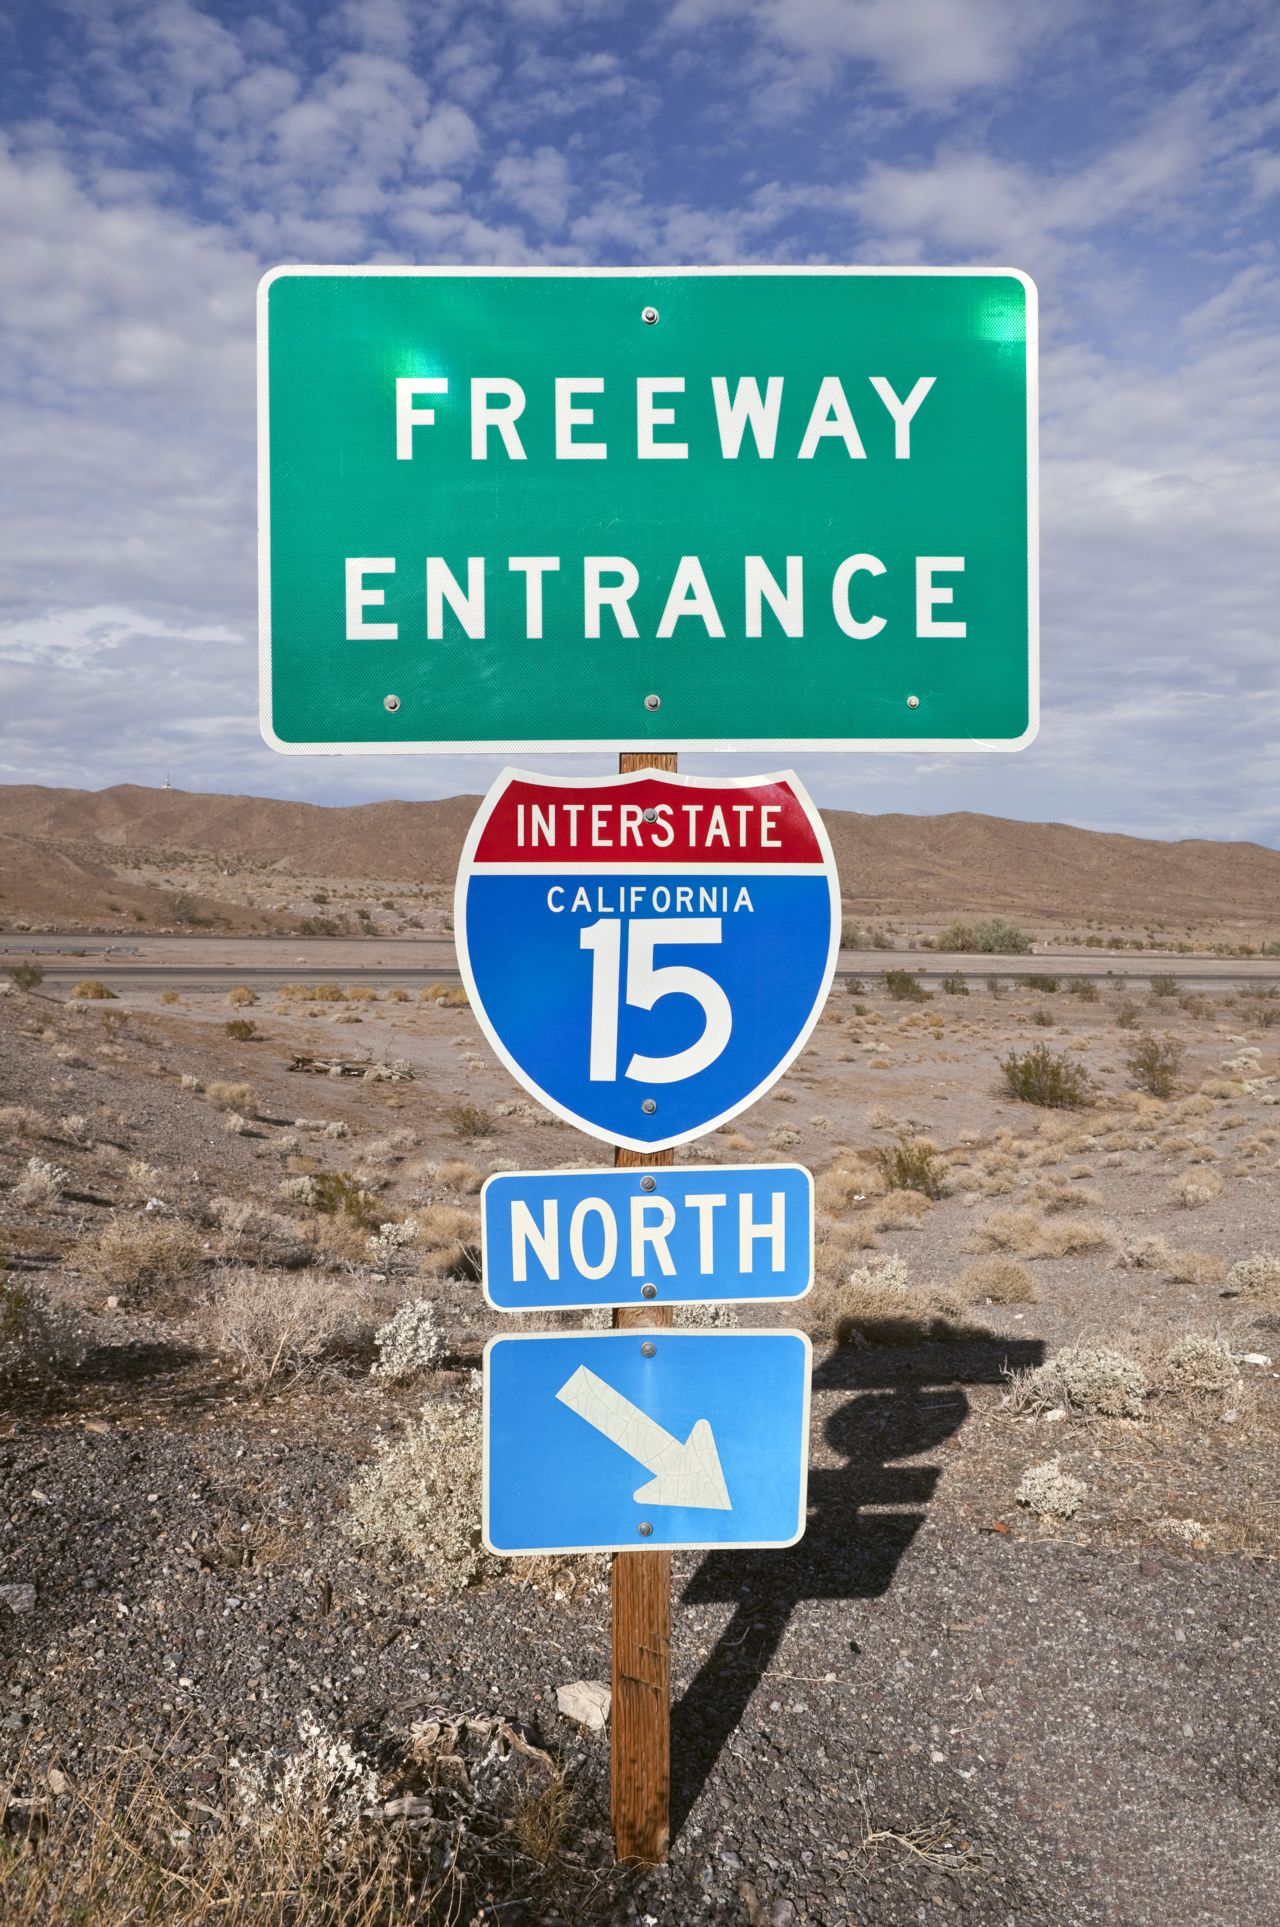 One Victorville CA Freeway Accidents Leads to Another